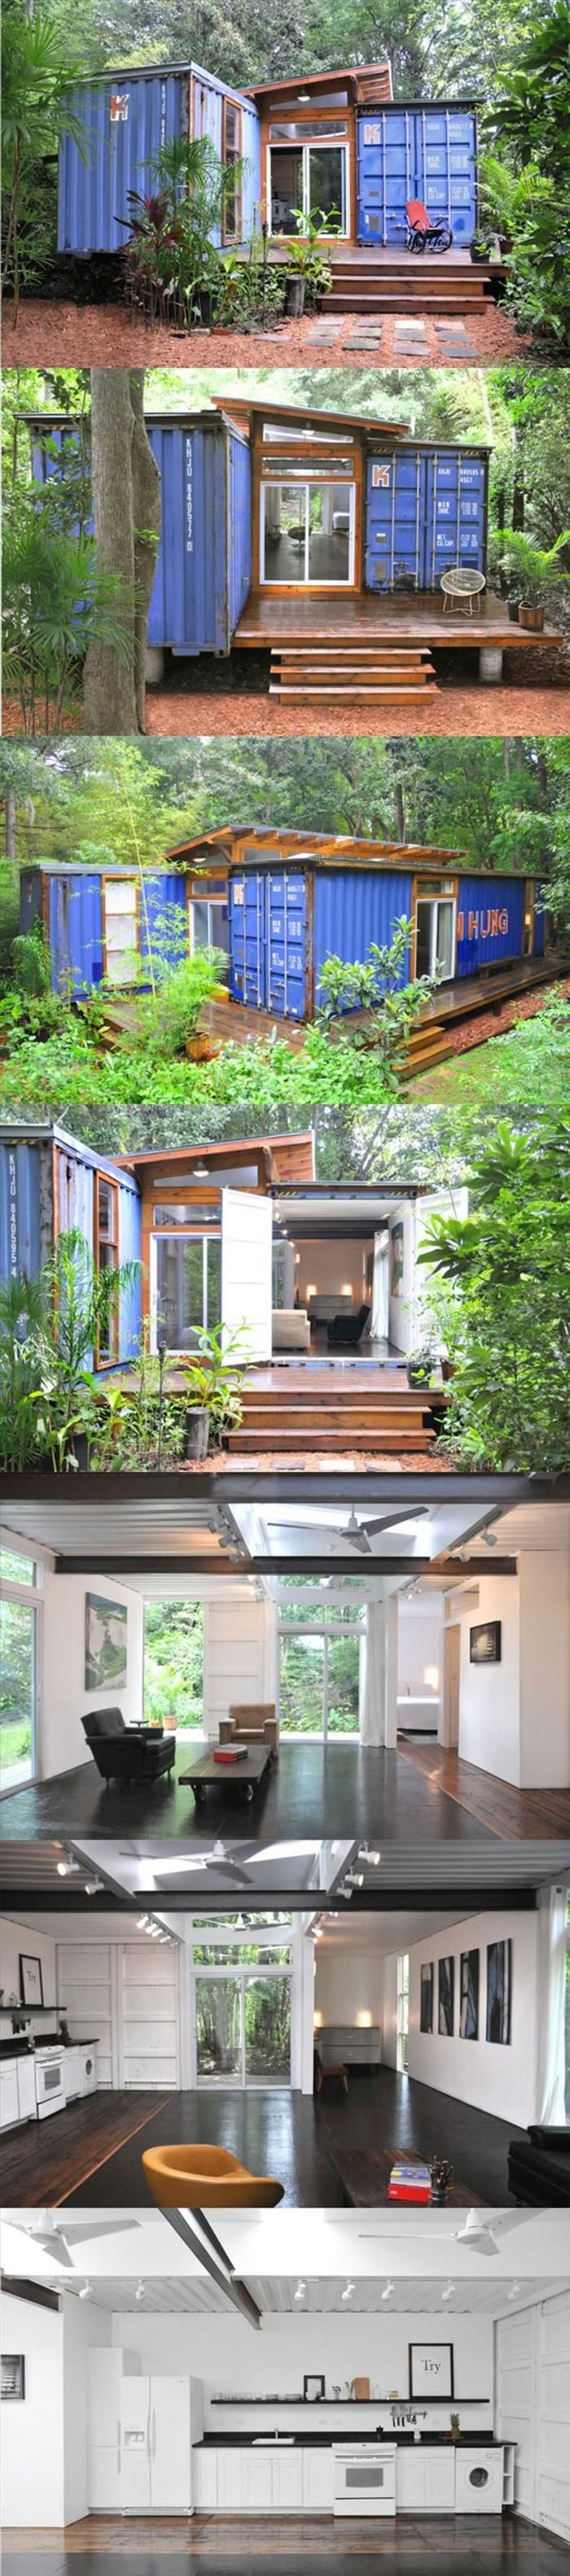 Shipping Container Homes That Will Blow Your Mind � 15 Pics